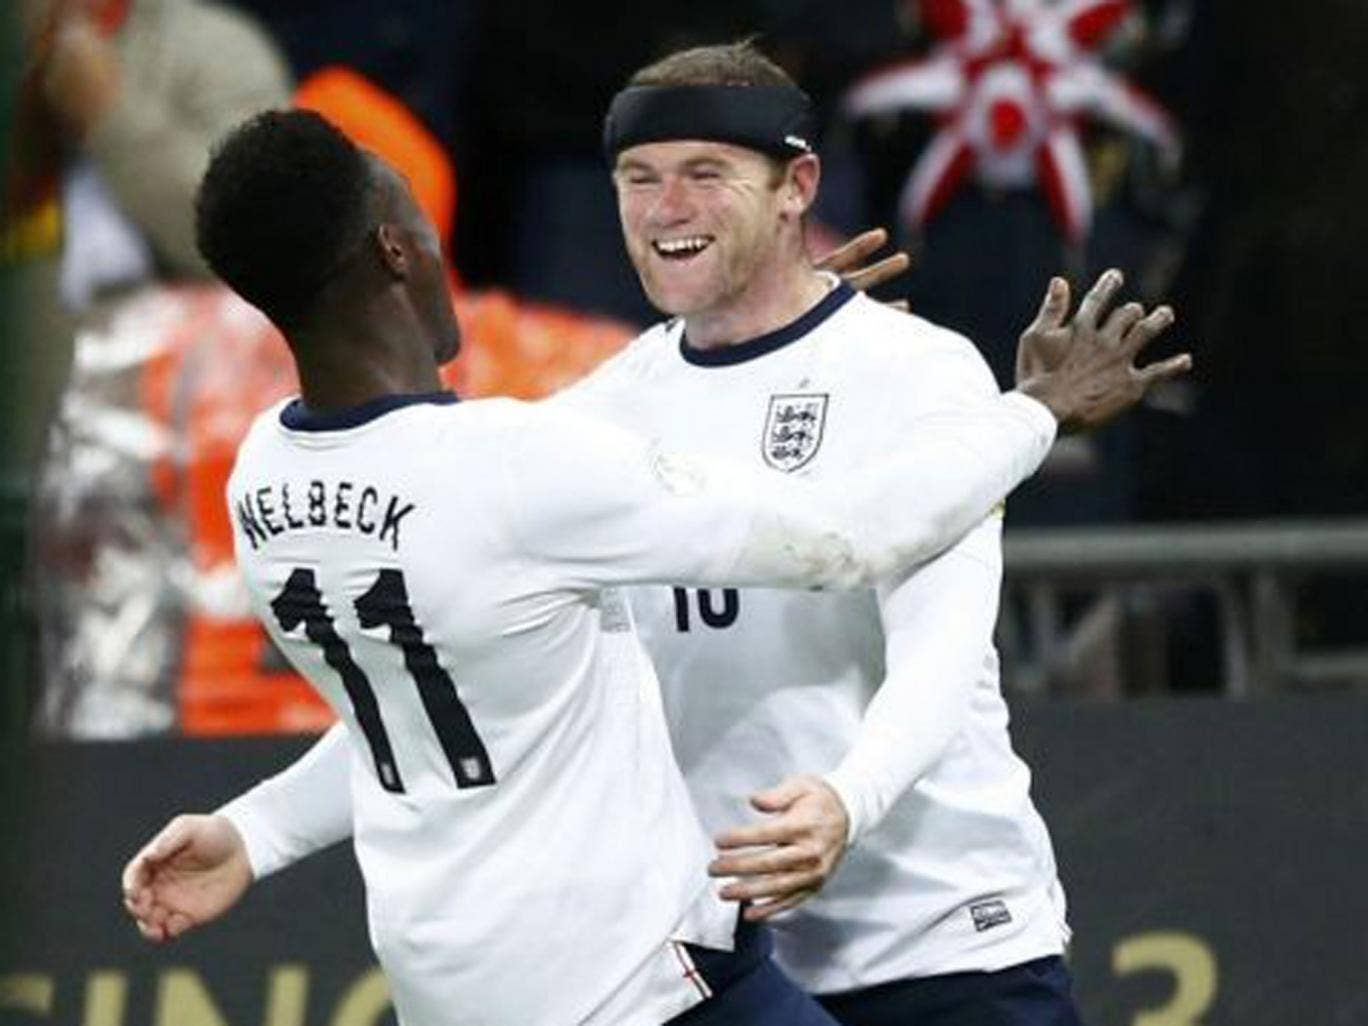 Opening salvo: Wayne Rooney celebrates with Danny Welbeck after he scored England's first goal against Montenegro on Friday night reuters